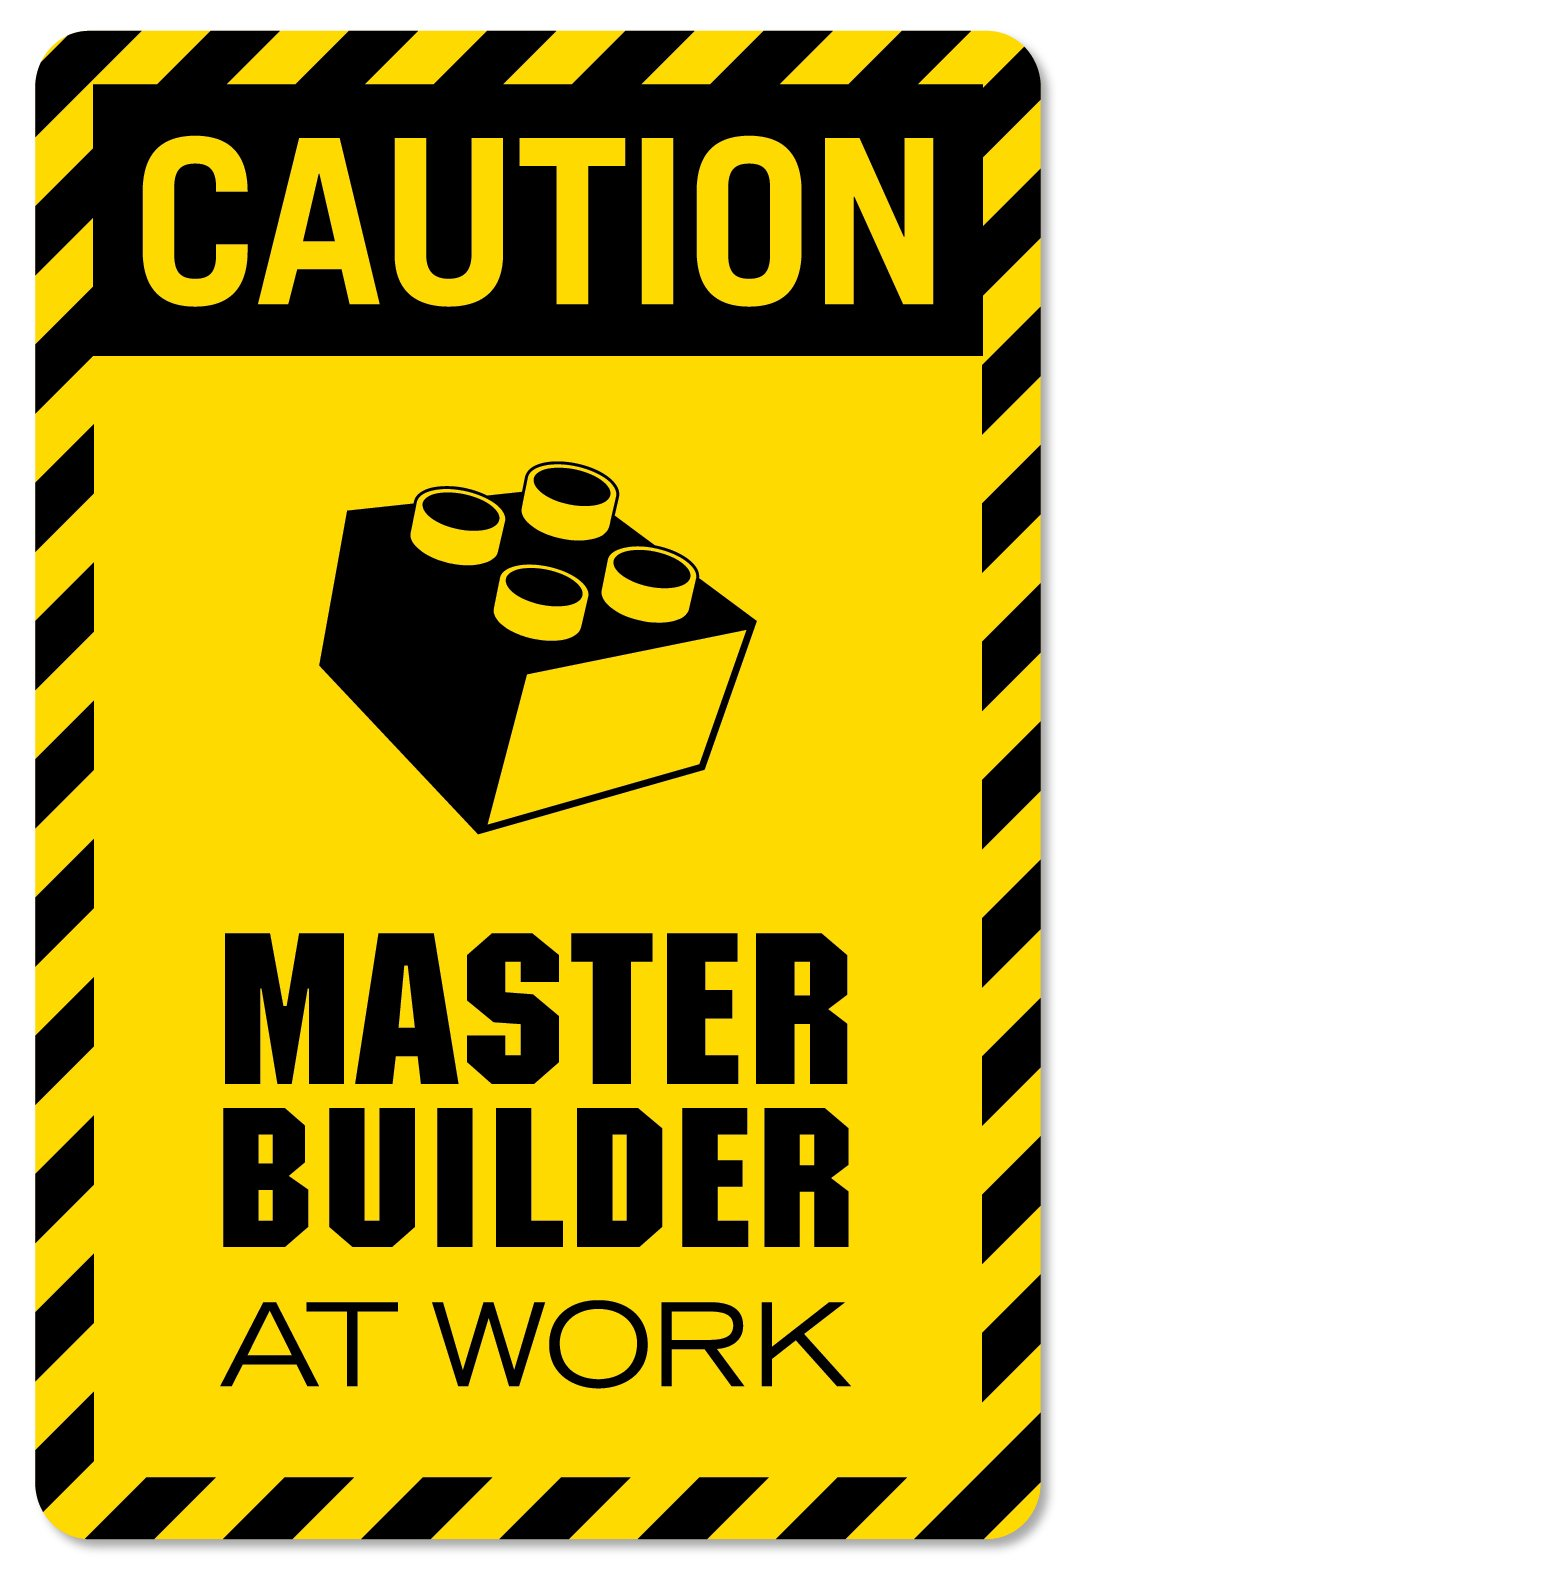 CAUTION master builder at work vinyl decal wall decor print for lego theme rooms and brickbuilders p2320 (Medium-12x18, DISP)